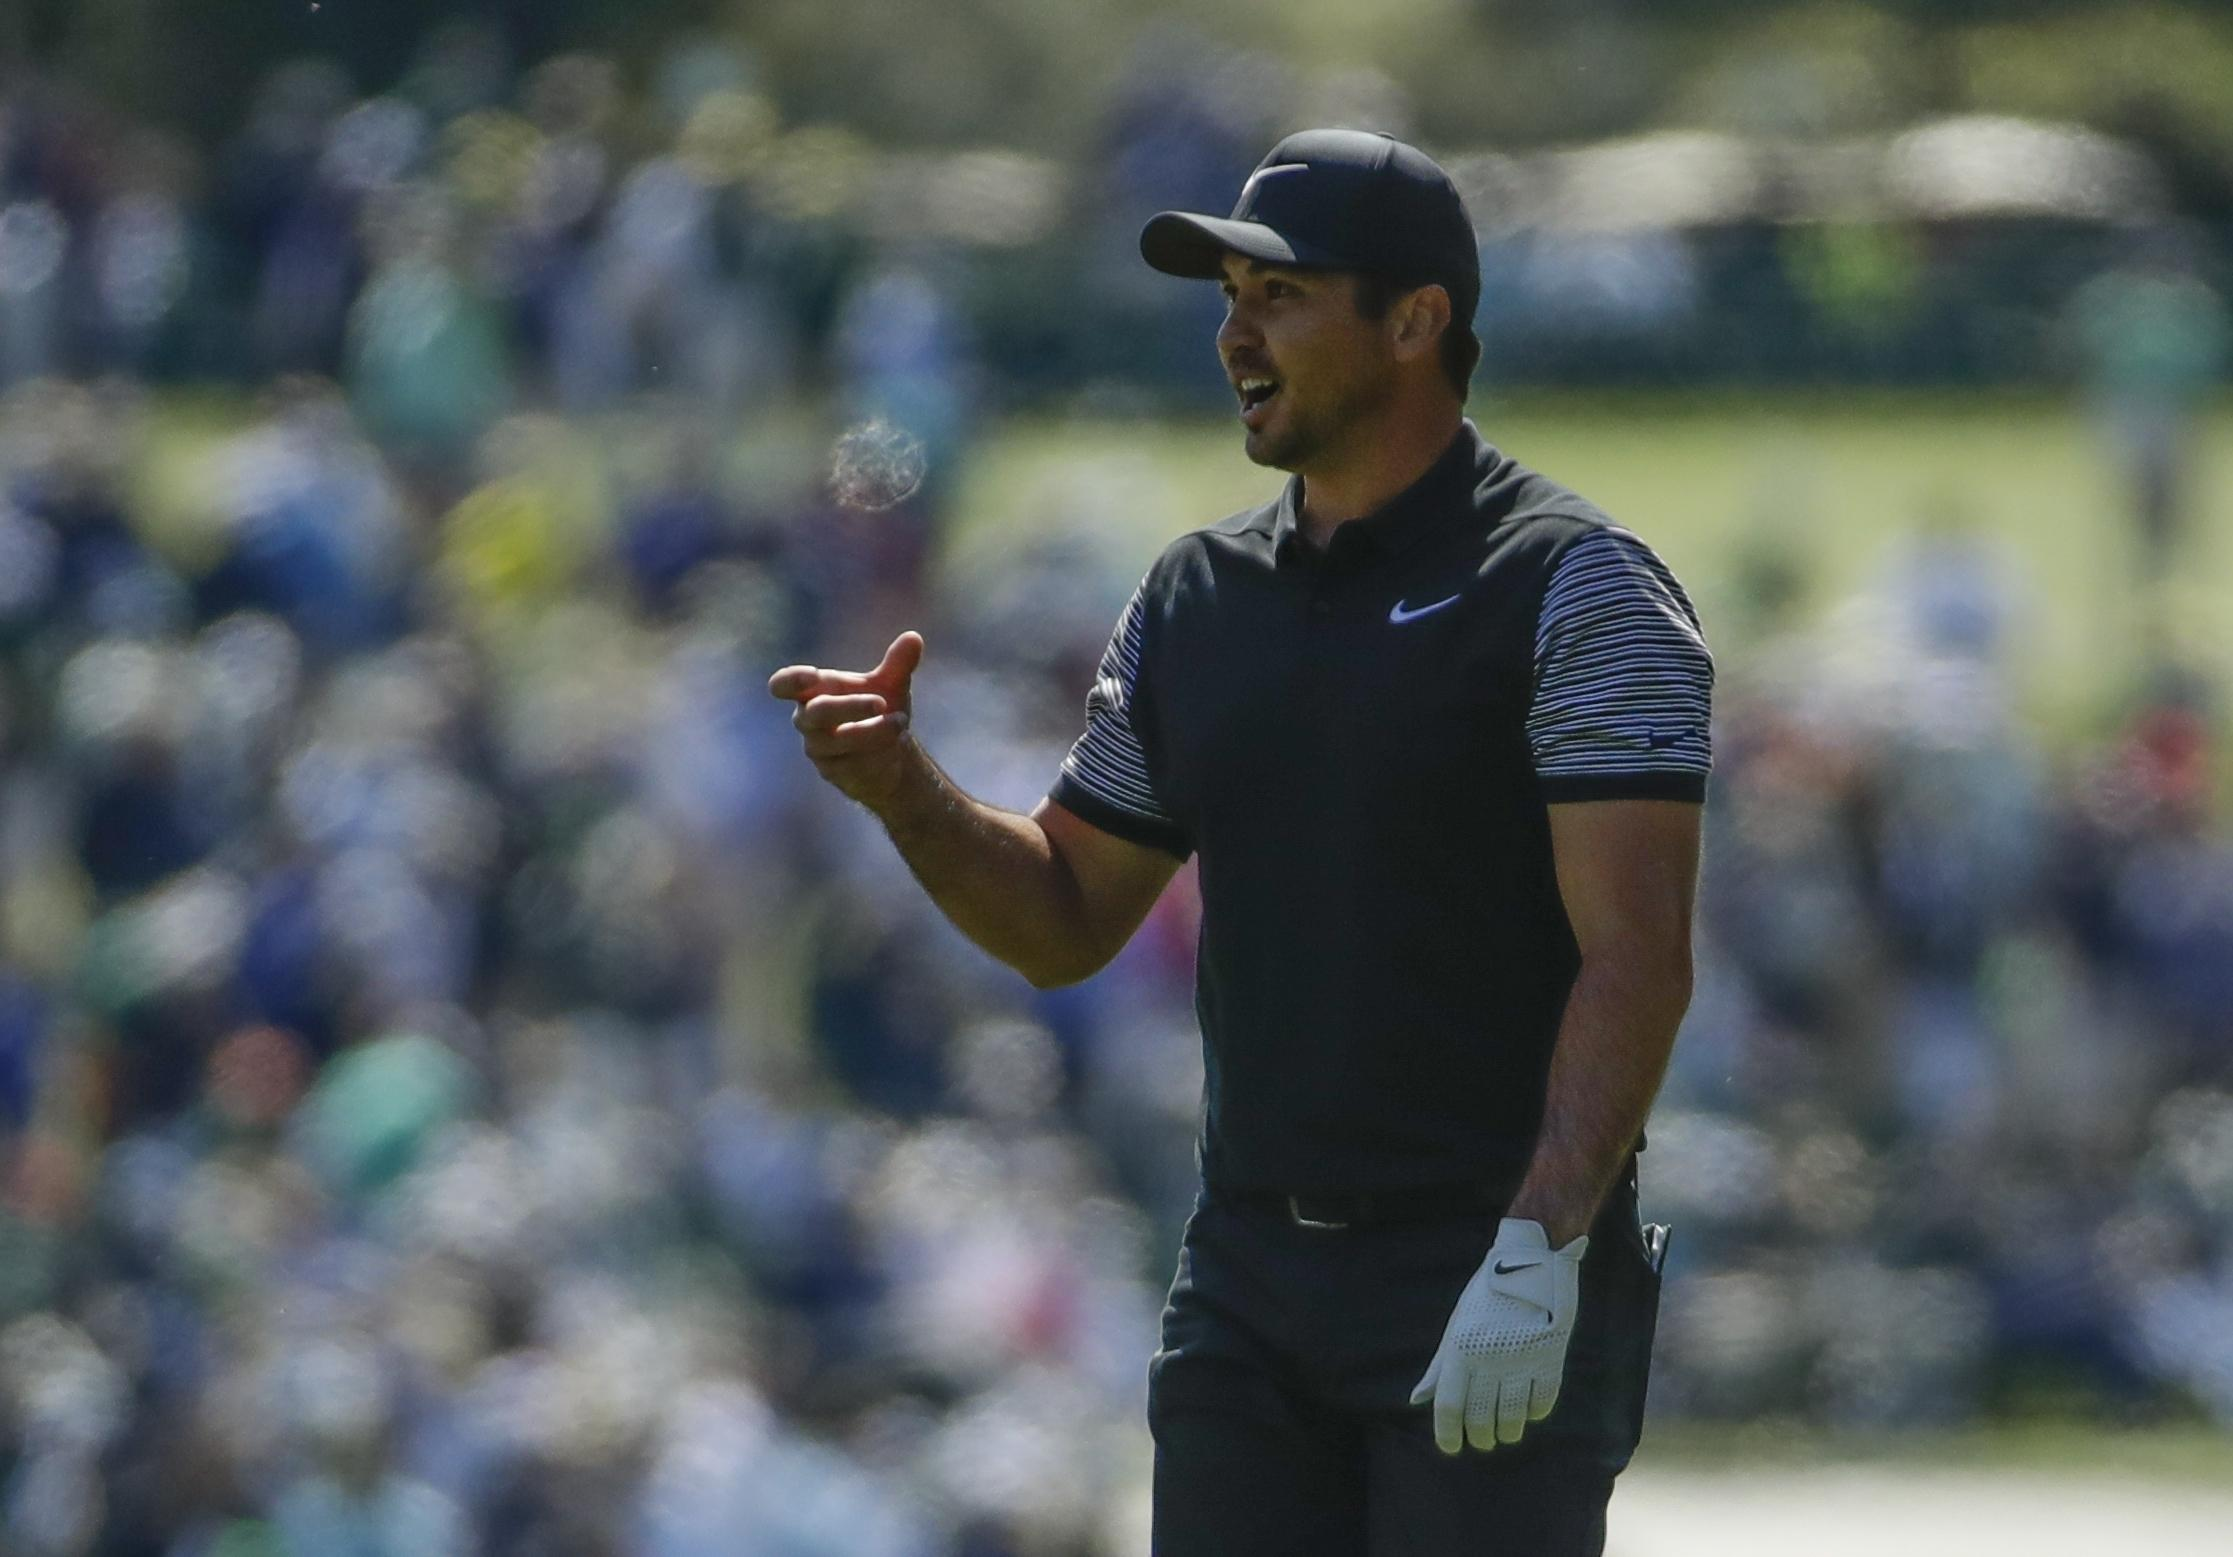 Jason Day looks shocked as he finds his ball has made its way to the bottom of the wrong cup